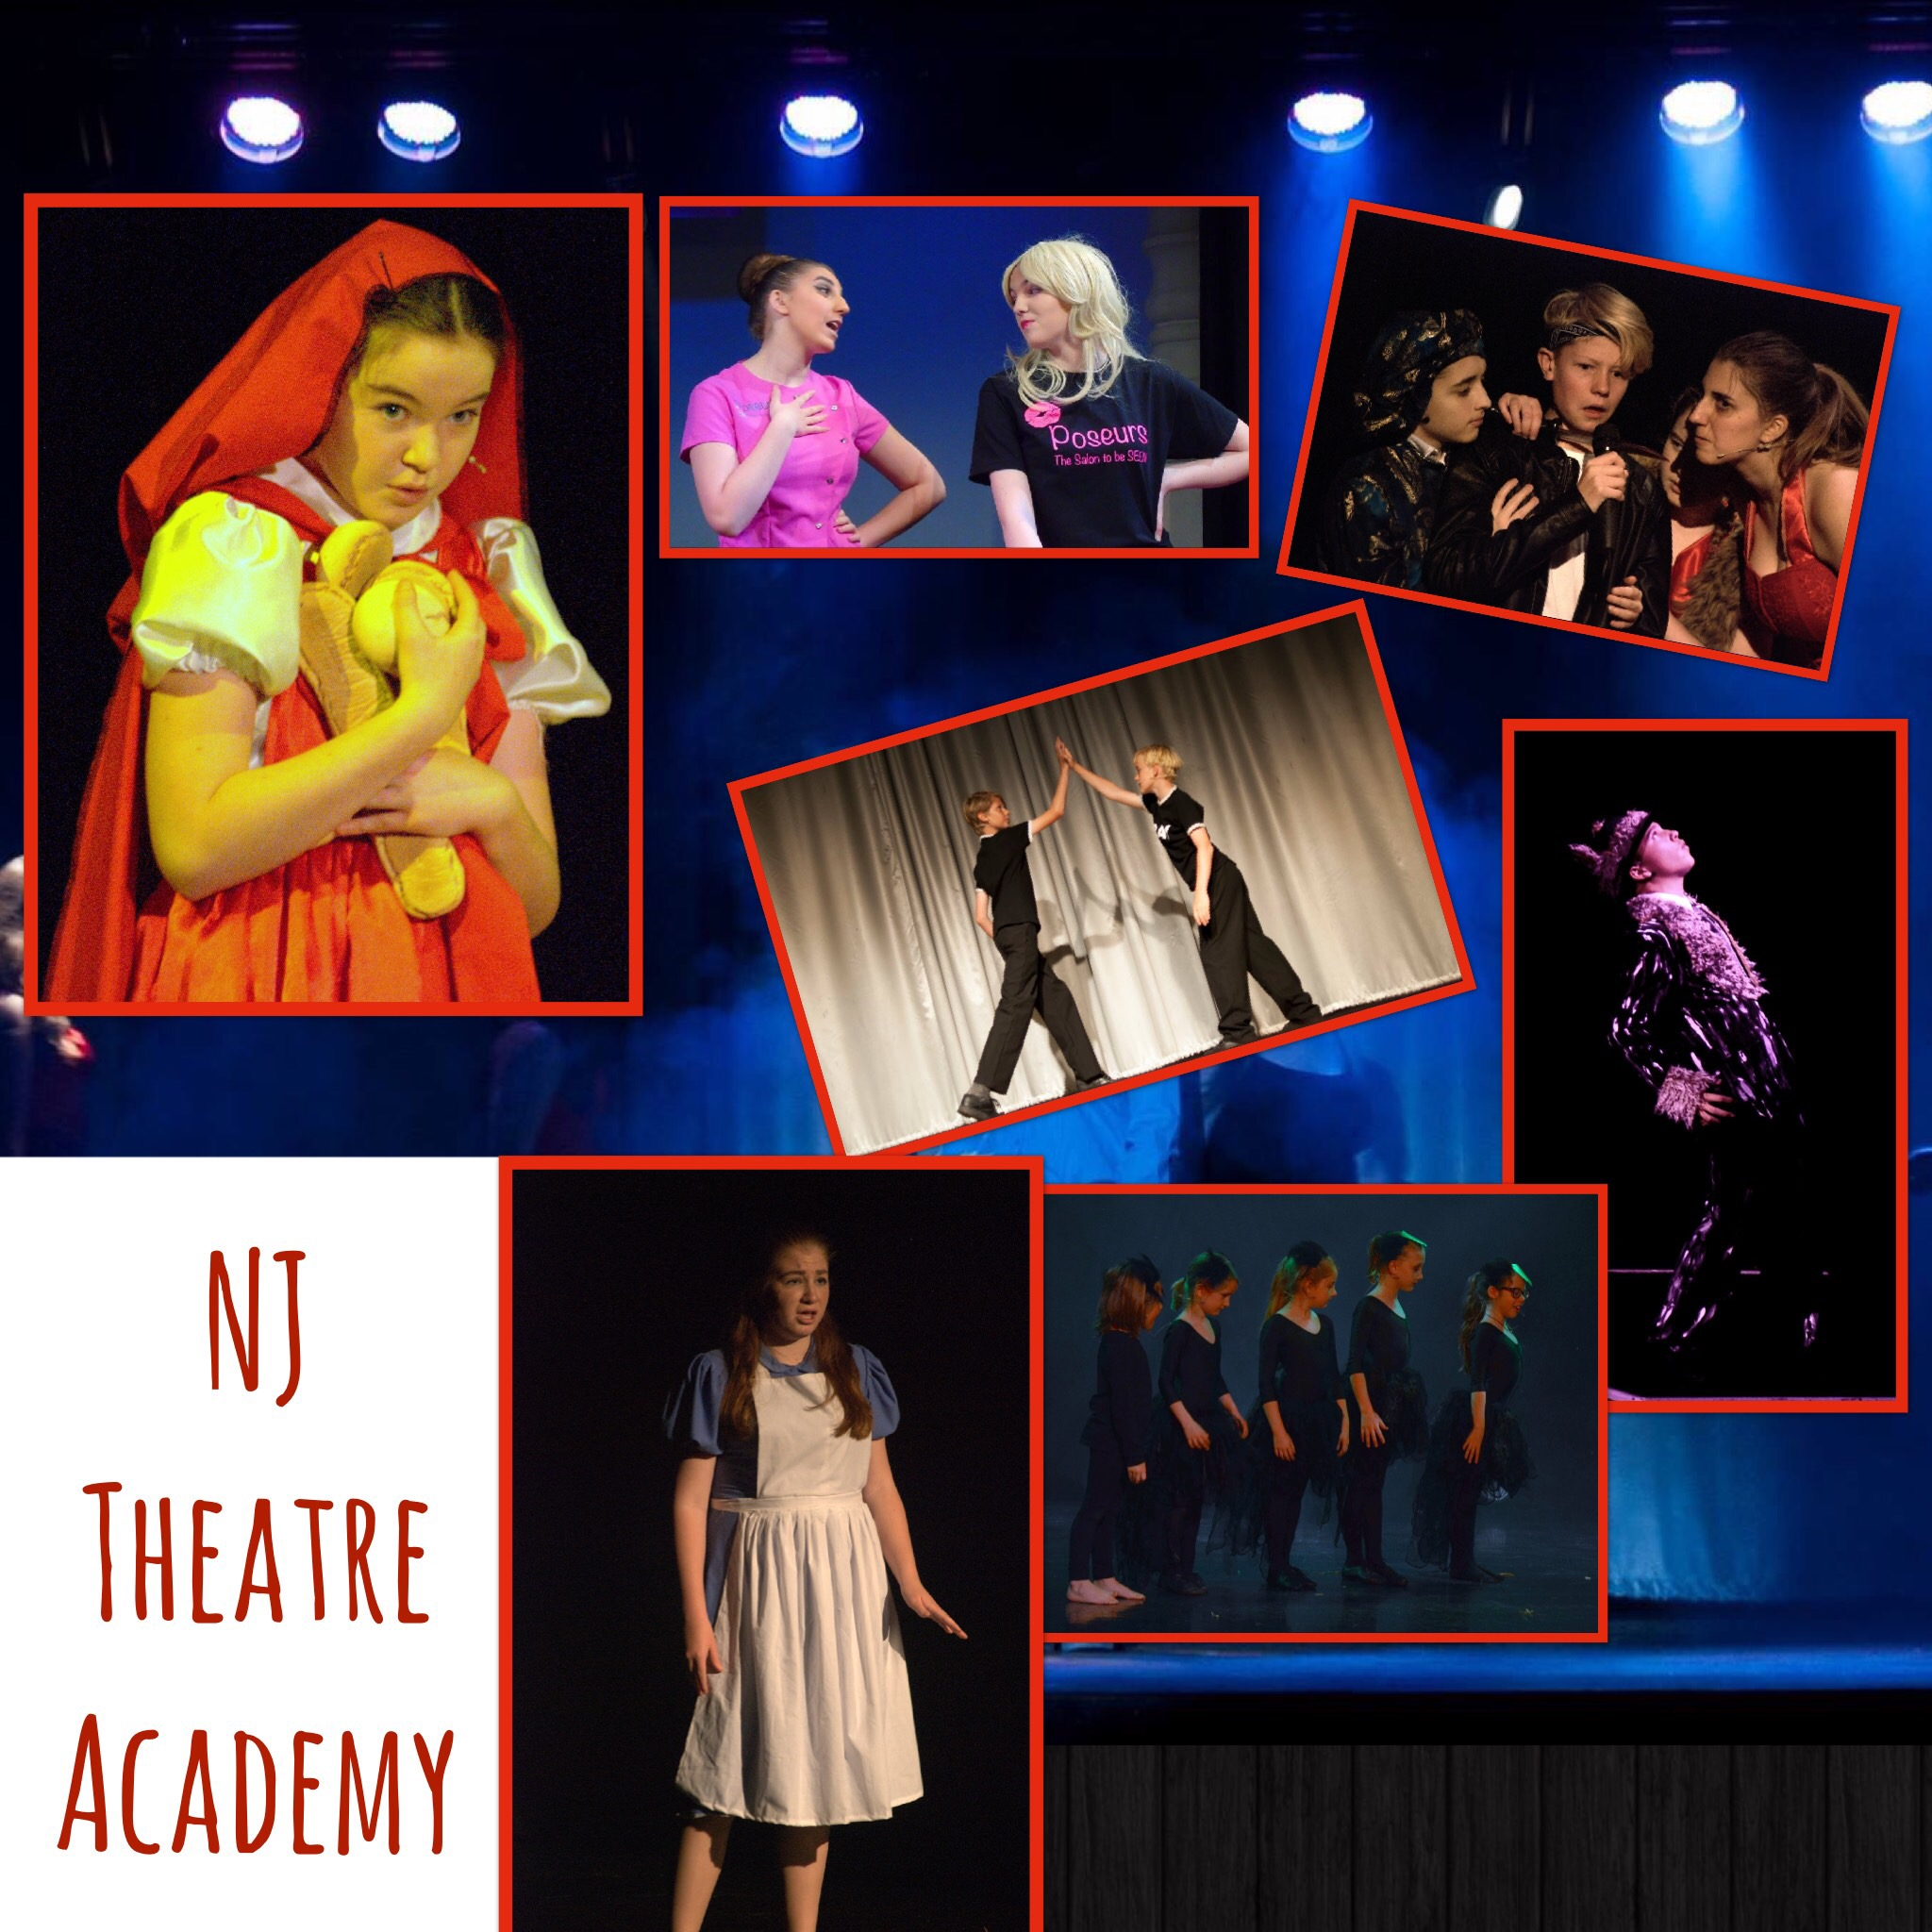 NJ Theatre Academy 'Free Open Day' 28th April